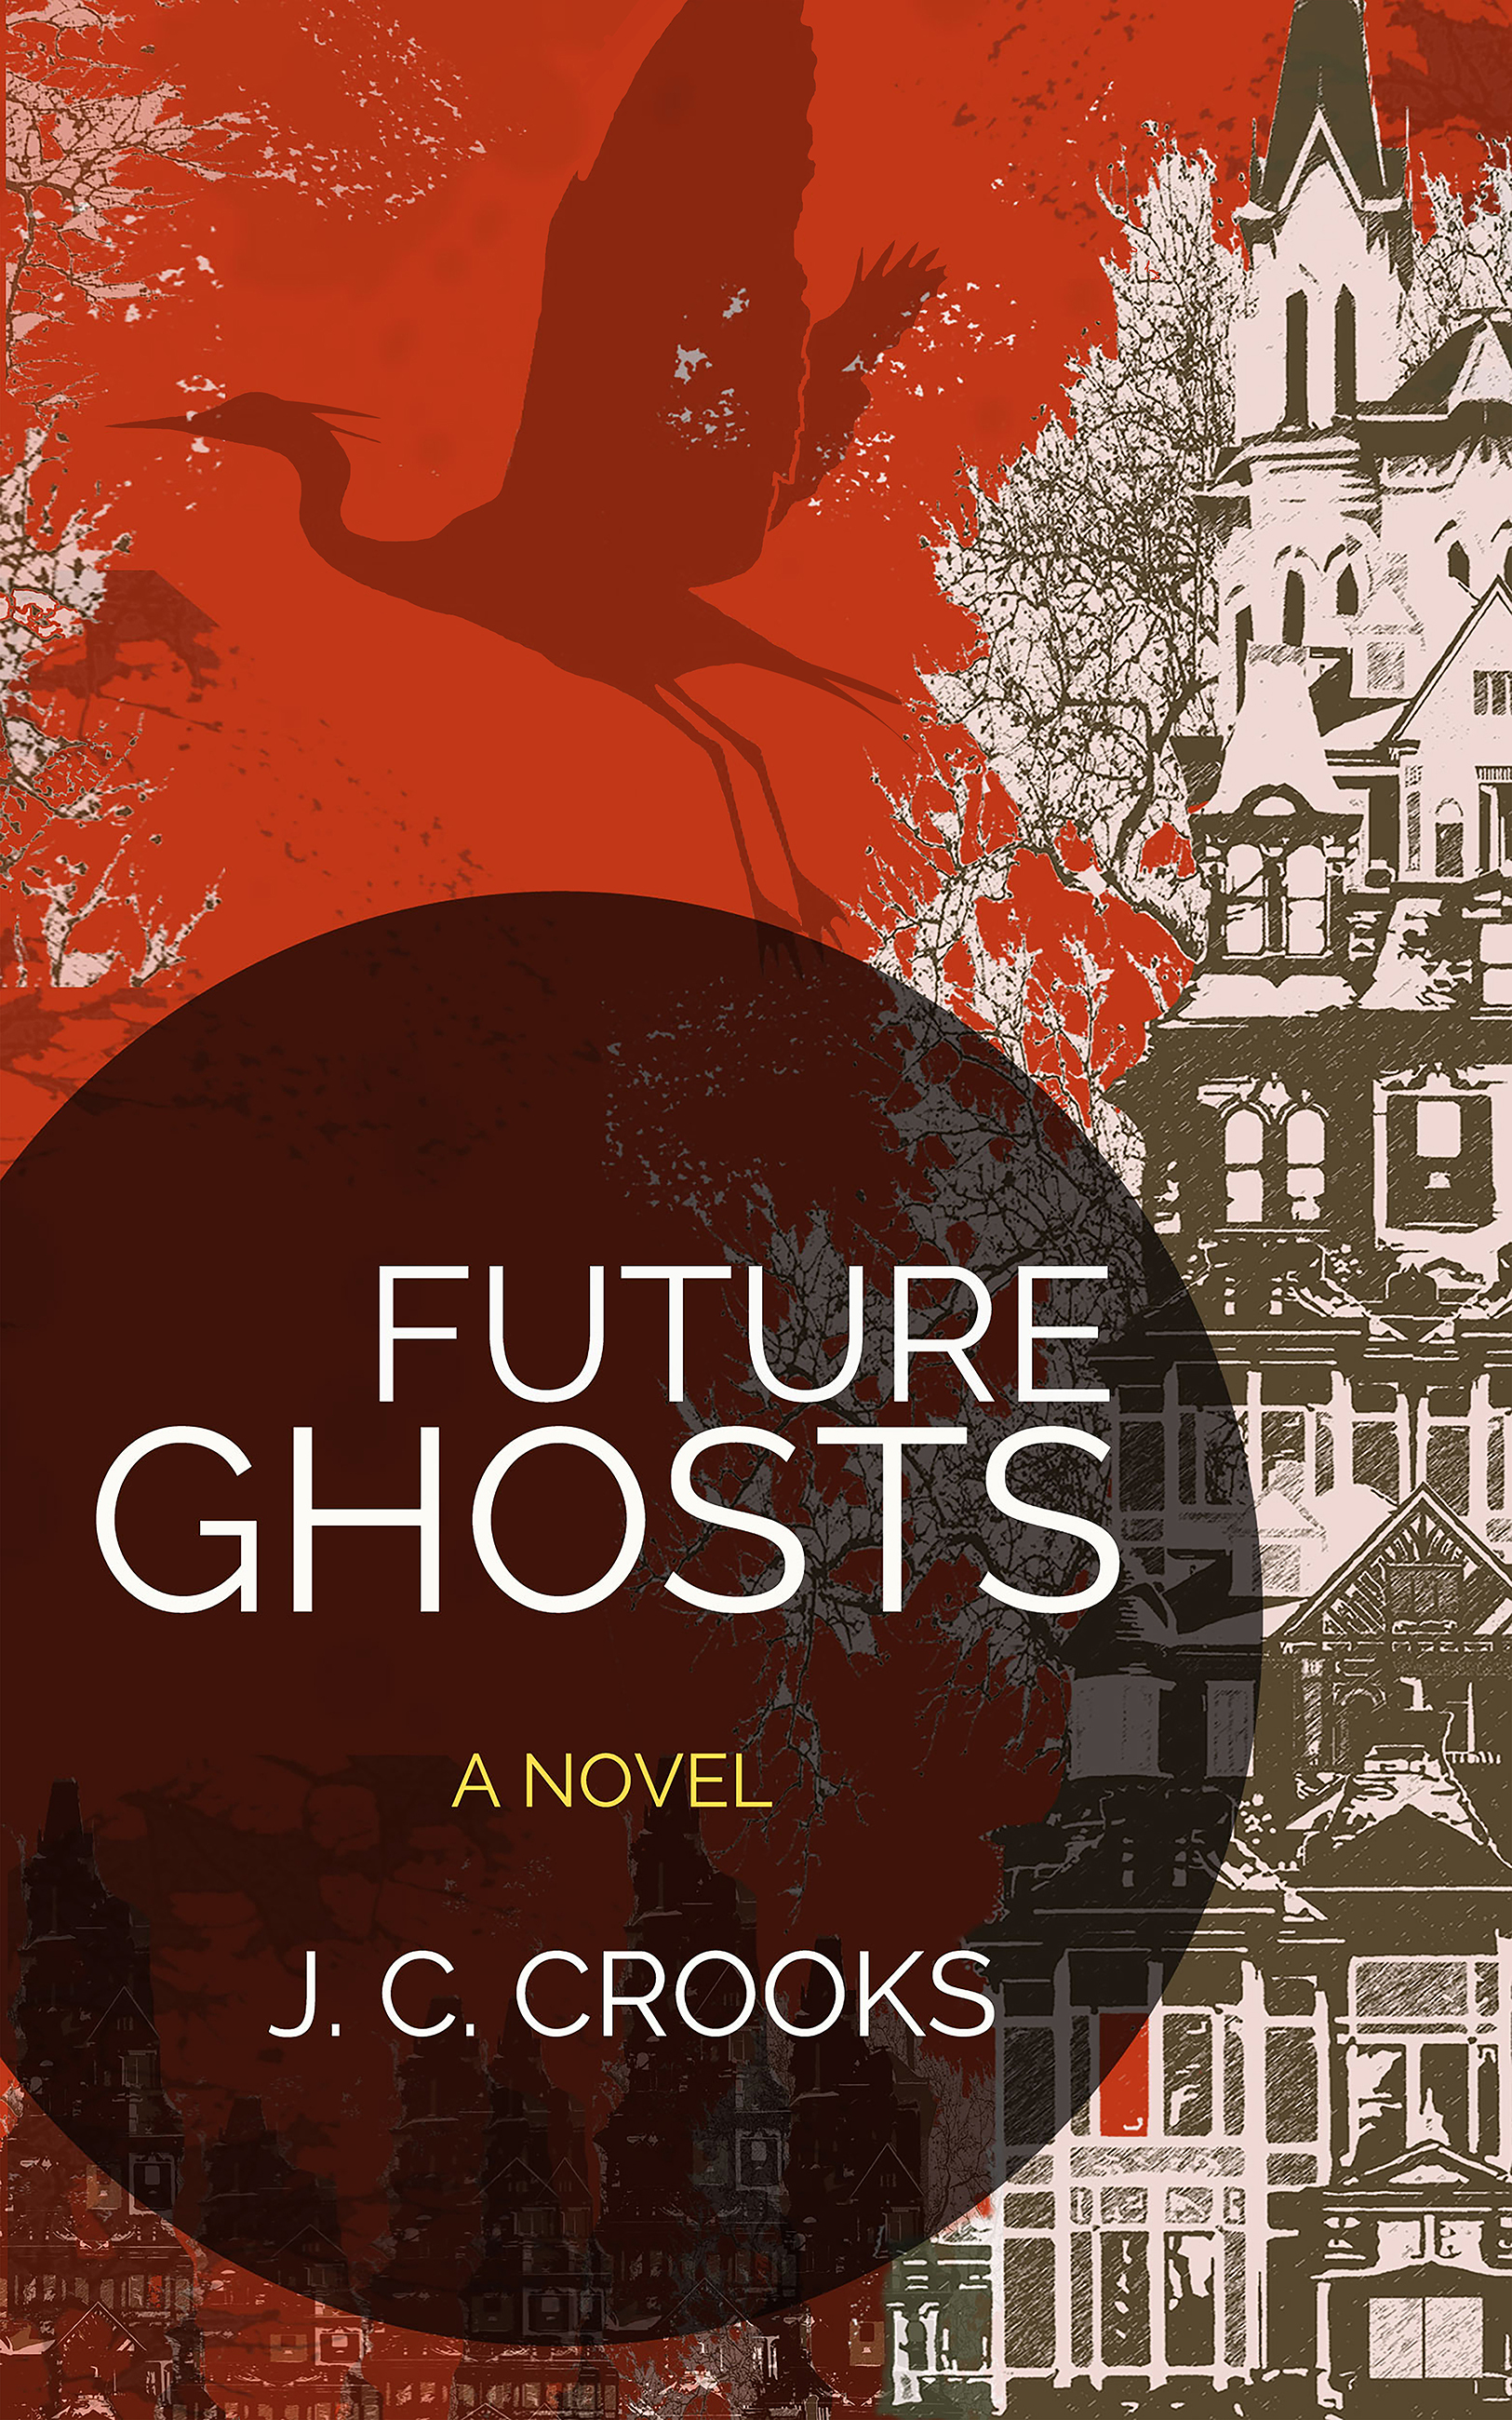 Future Ghosts: A Novel in 82 Cantos